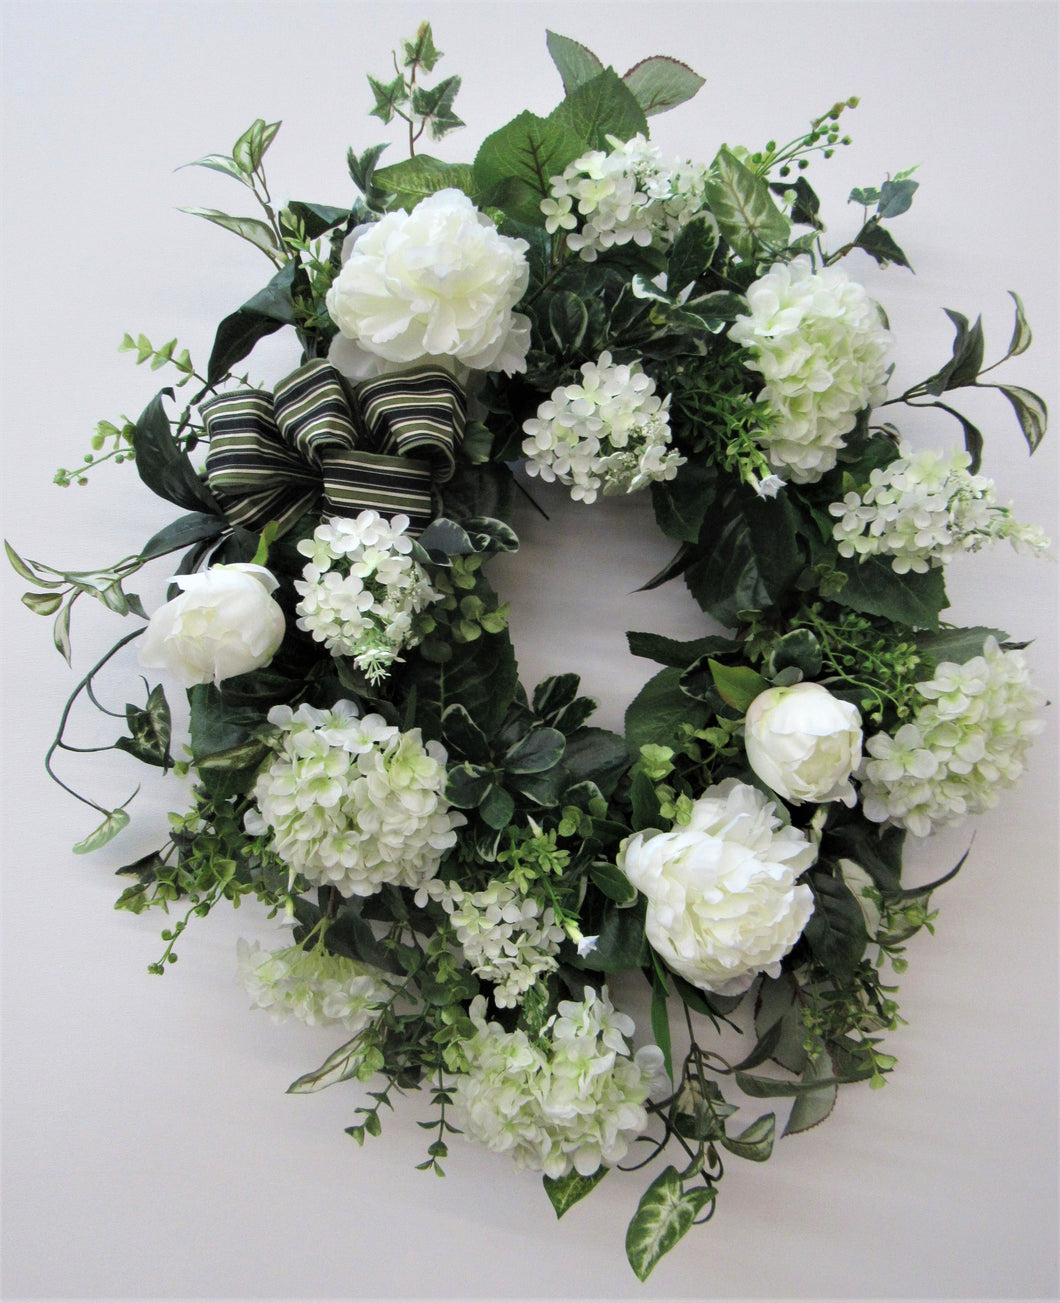 GalleryVer73 - April's Garden Wreath